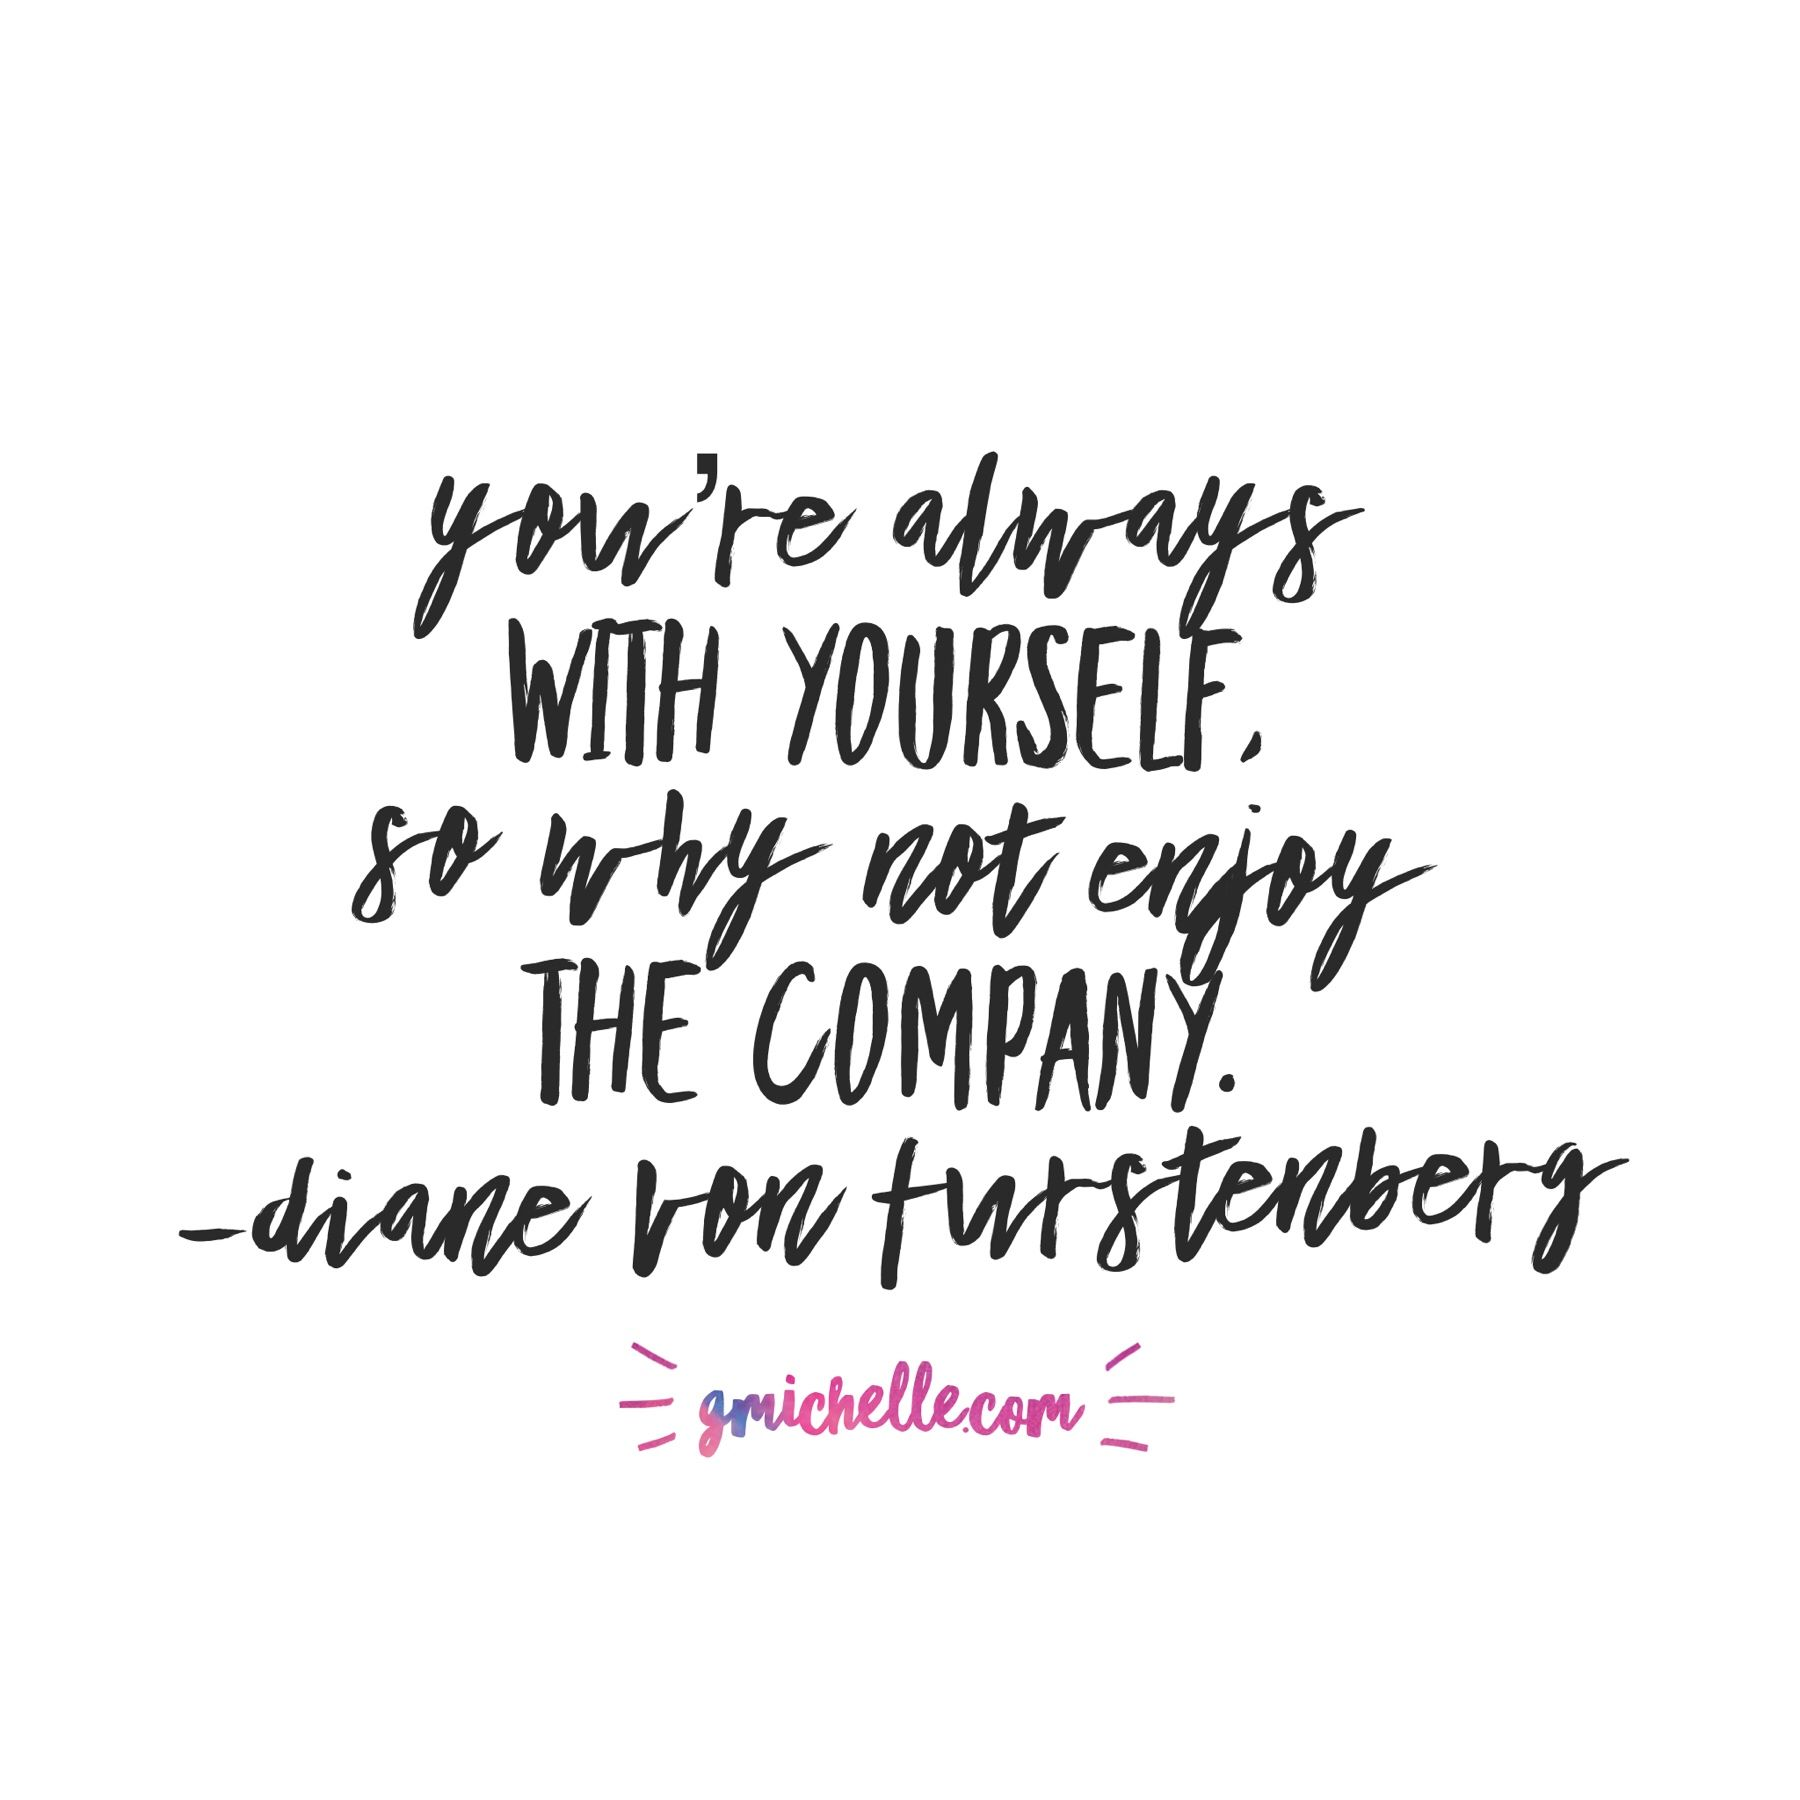 Gmichelle Daily Self Care Creating Space To Intentionally Practice Self Care Self Quotes Inspiring Quotes About Life Quotes About Love And Relationships